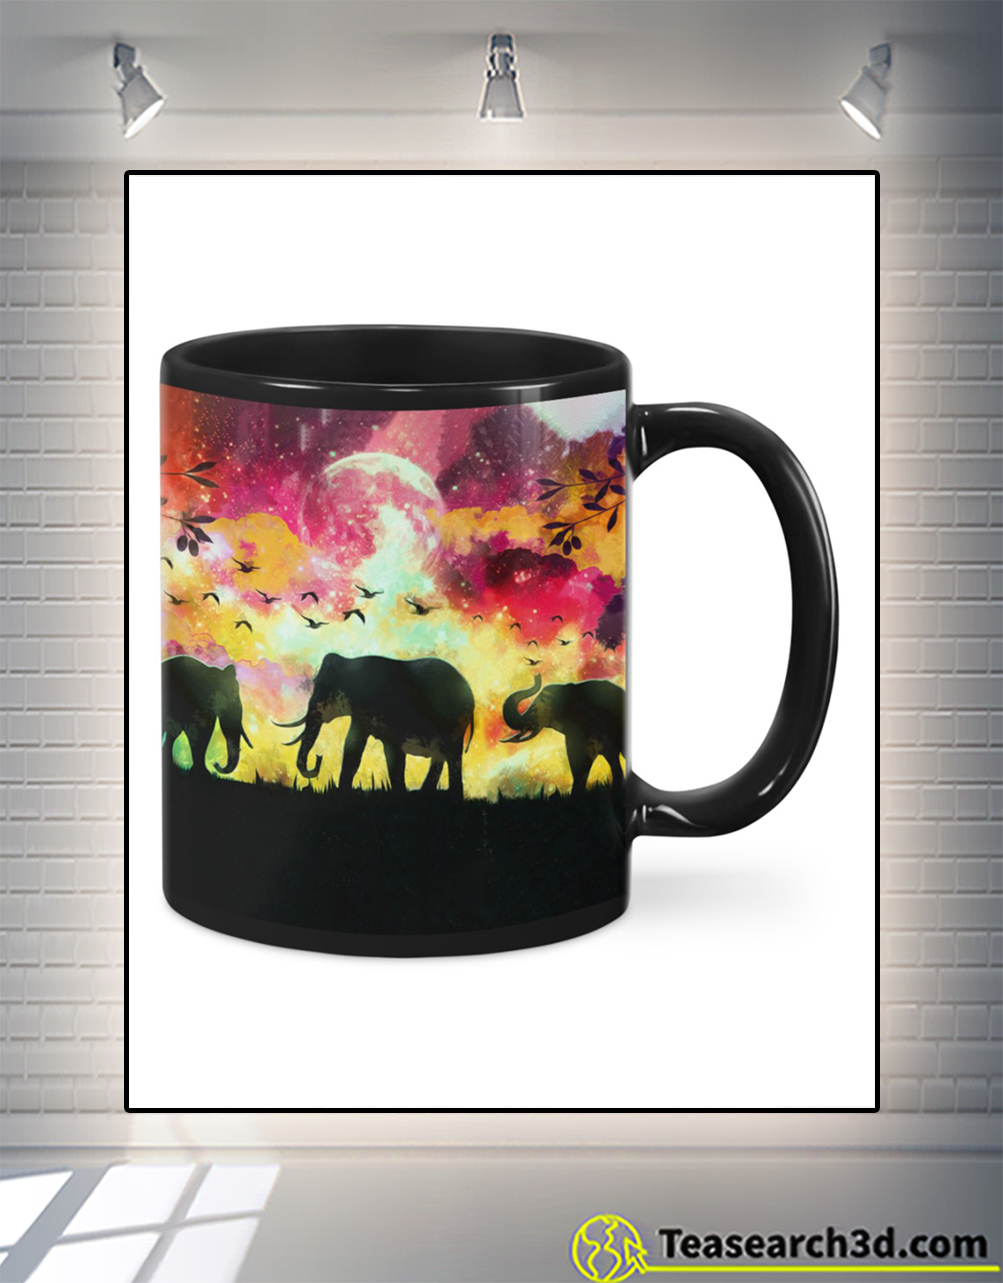 Elephants in a forest at night oil painting mug